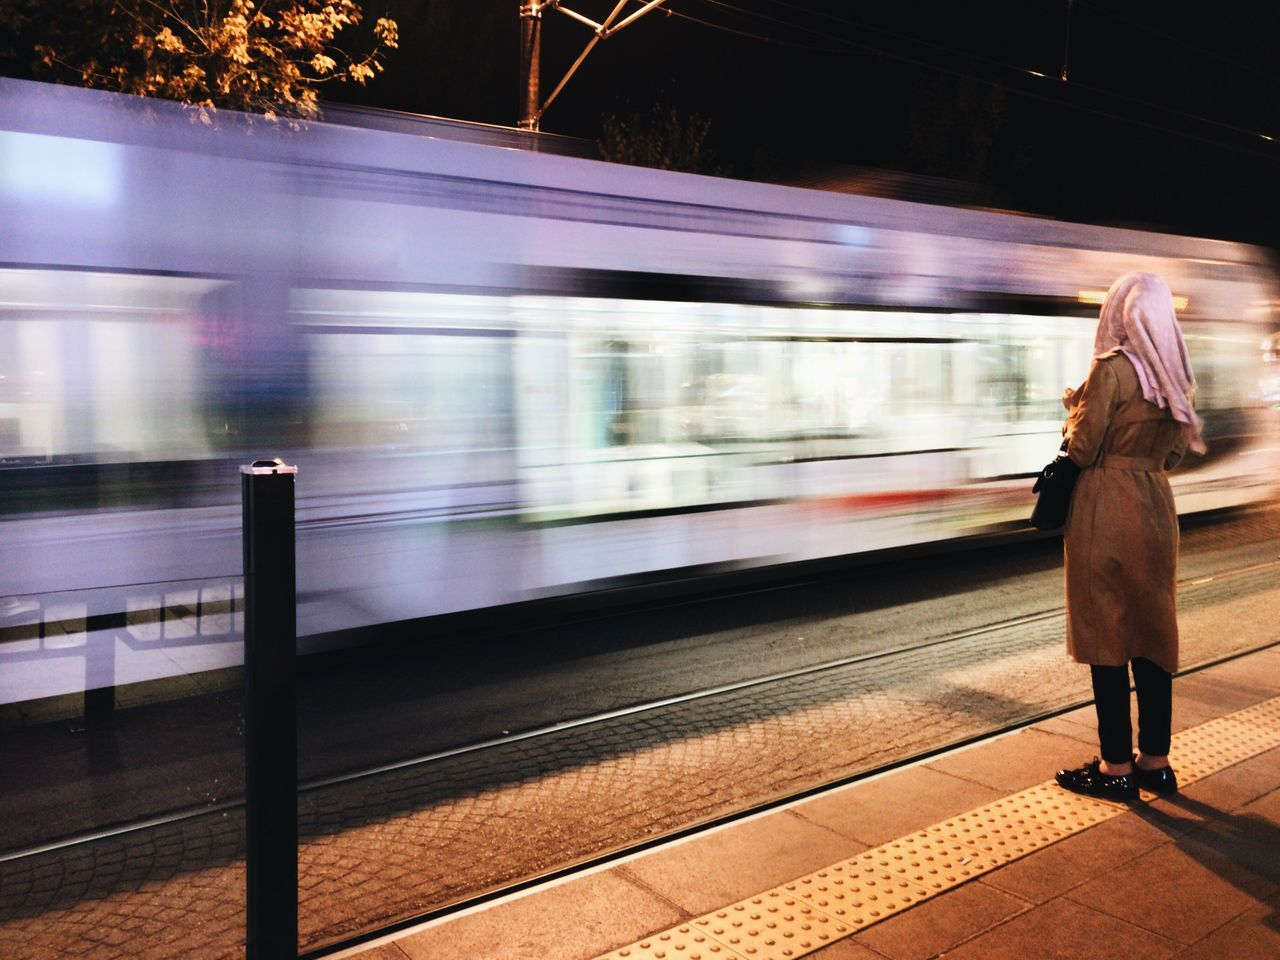 Istanbul night Istanbul Blurred Motion Speed Public Transportation On The Move Mobilephotography